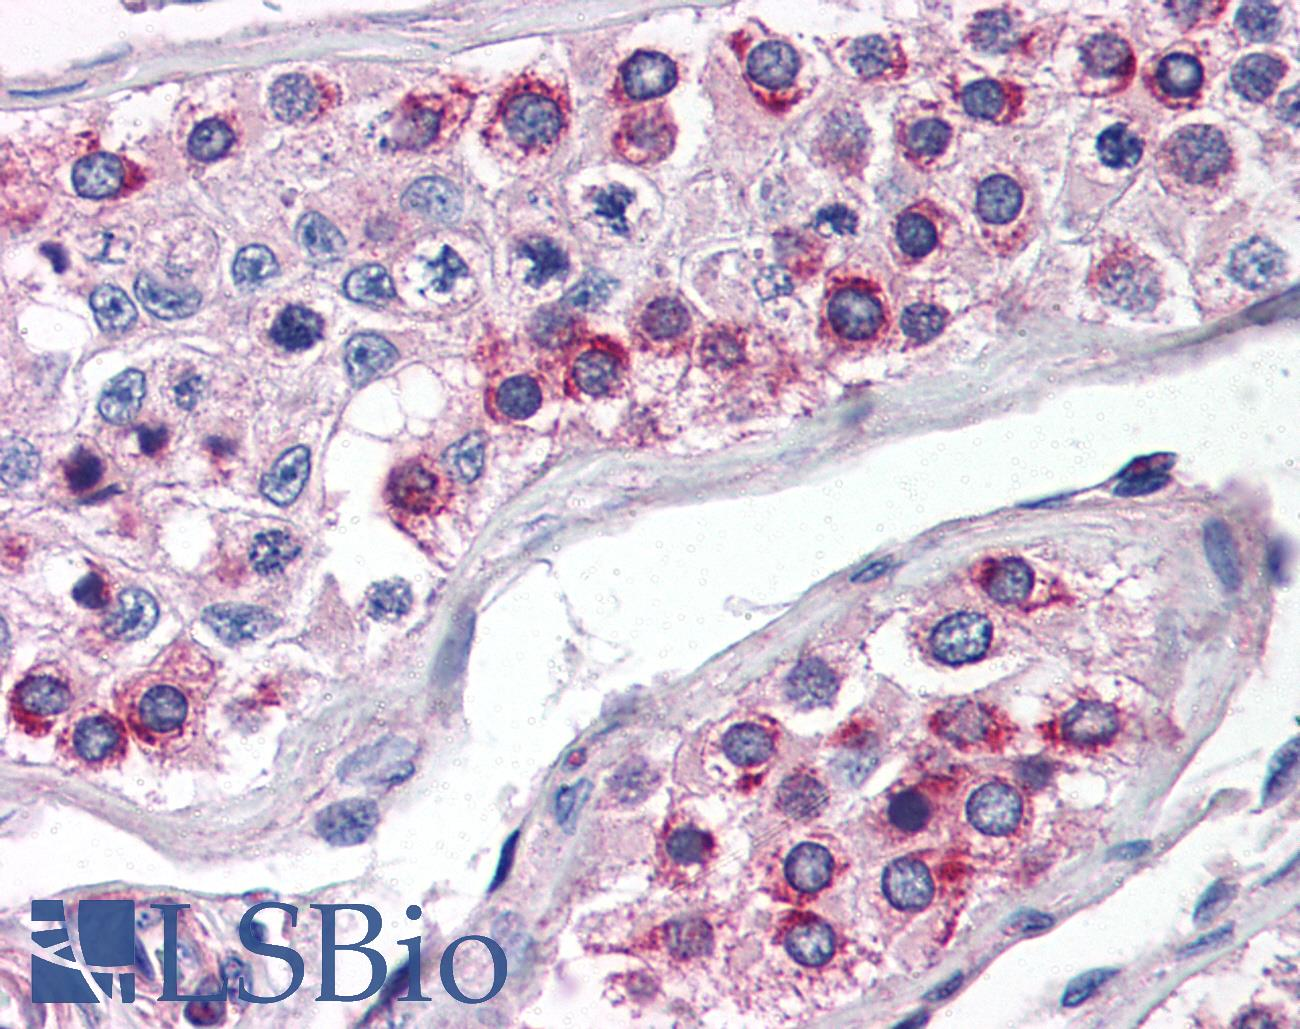 ATG16L1 / ATG16L Antibody - Anti-ATG16L1 antibody IHC of human testis. Immunohistochemistry of formalin-fixed, paraffin-embedded tissue after heat-induced antigen retrieval. Antibody concentration 5 ug/ml.